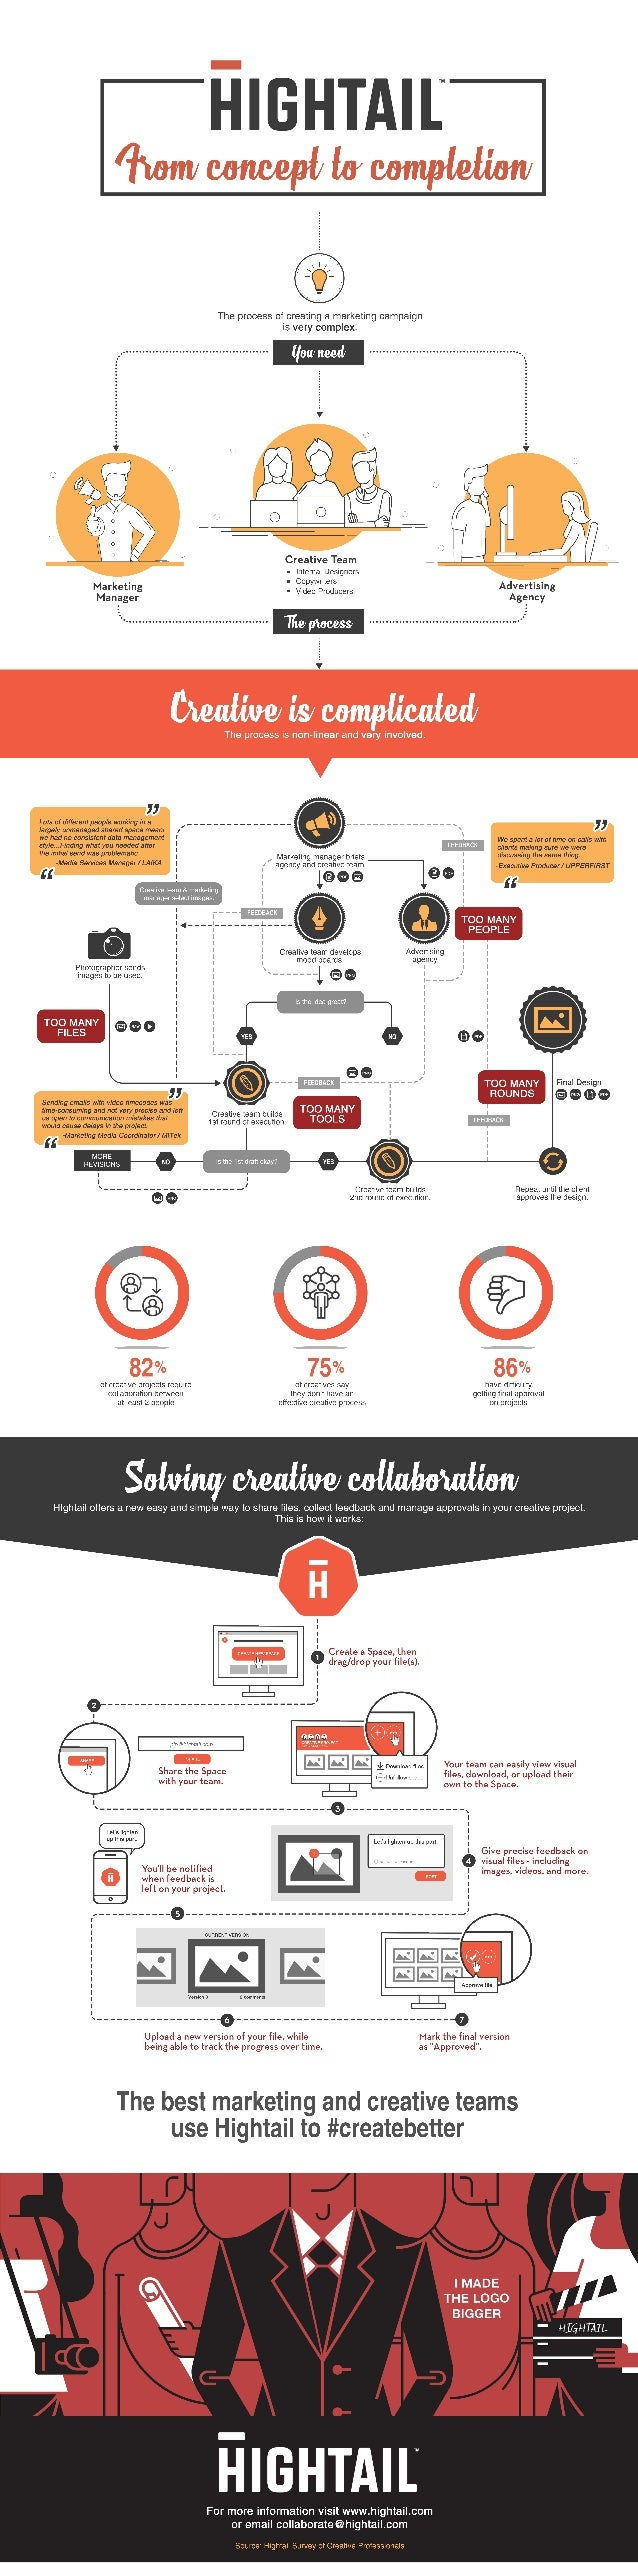 The creative process explained (infographic)